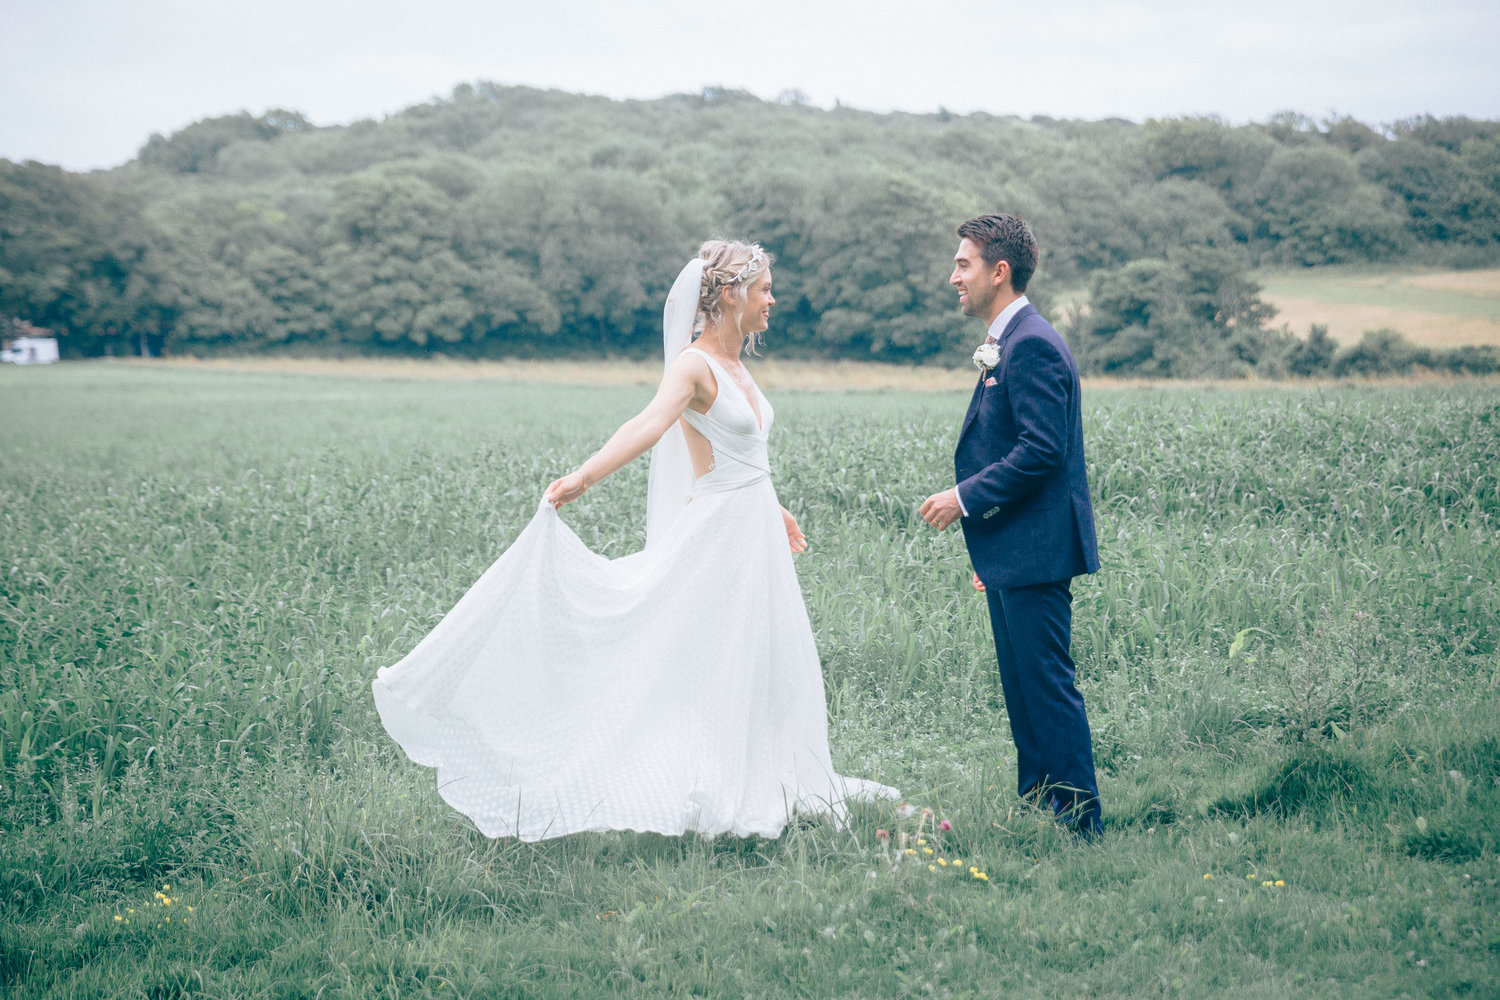 Did you catch last week's friday bride, Josie? - Our cool bride walked down the aisle in an Mainline Collection dress